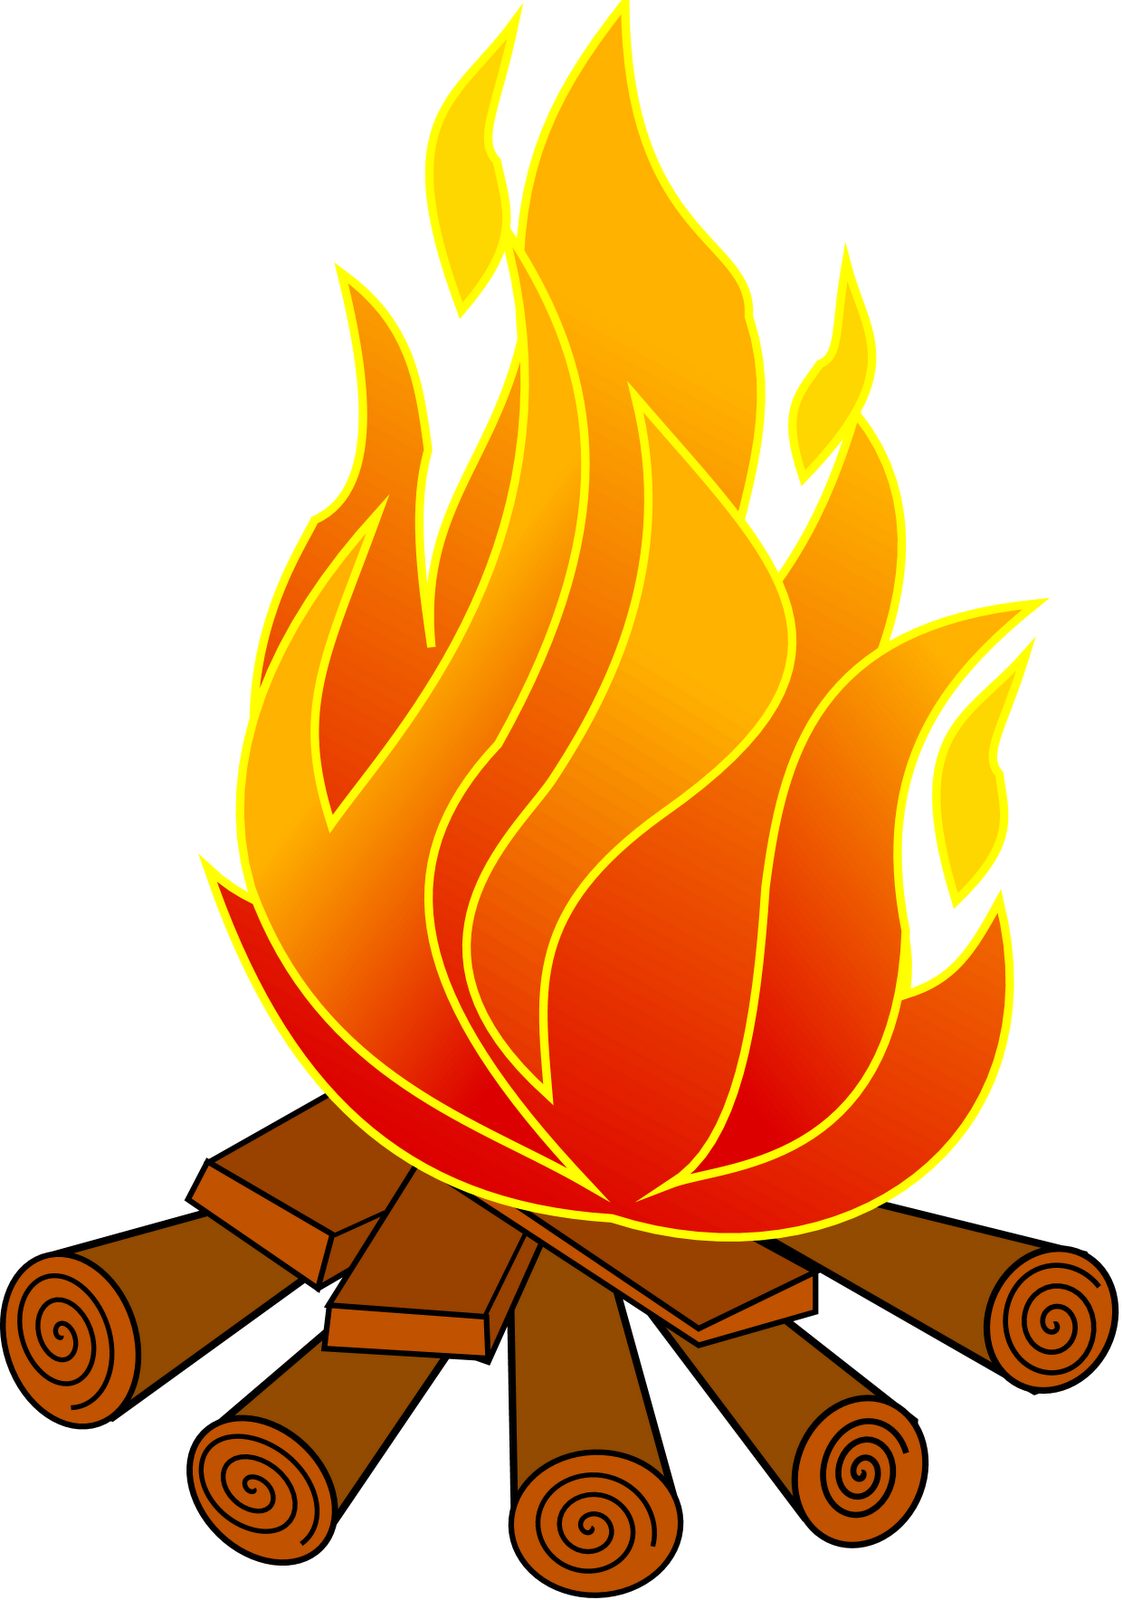 Fireplace clipart hearth 2 images com flame free